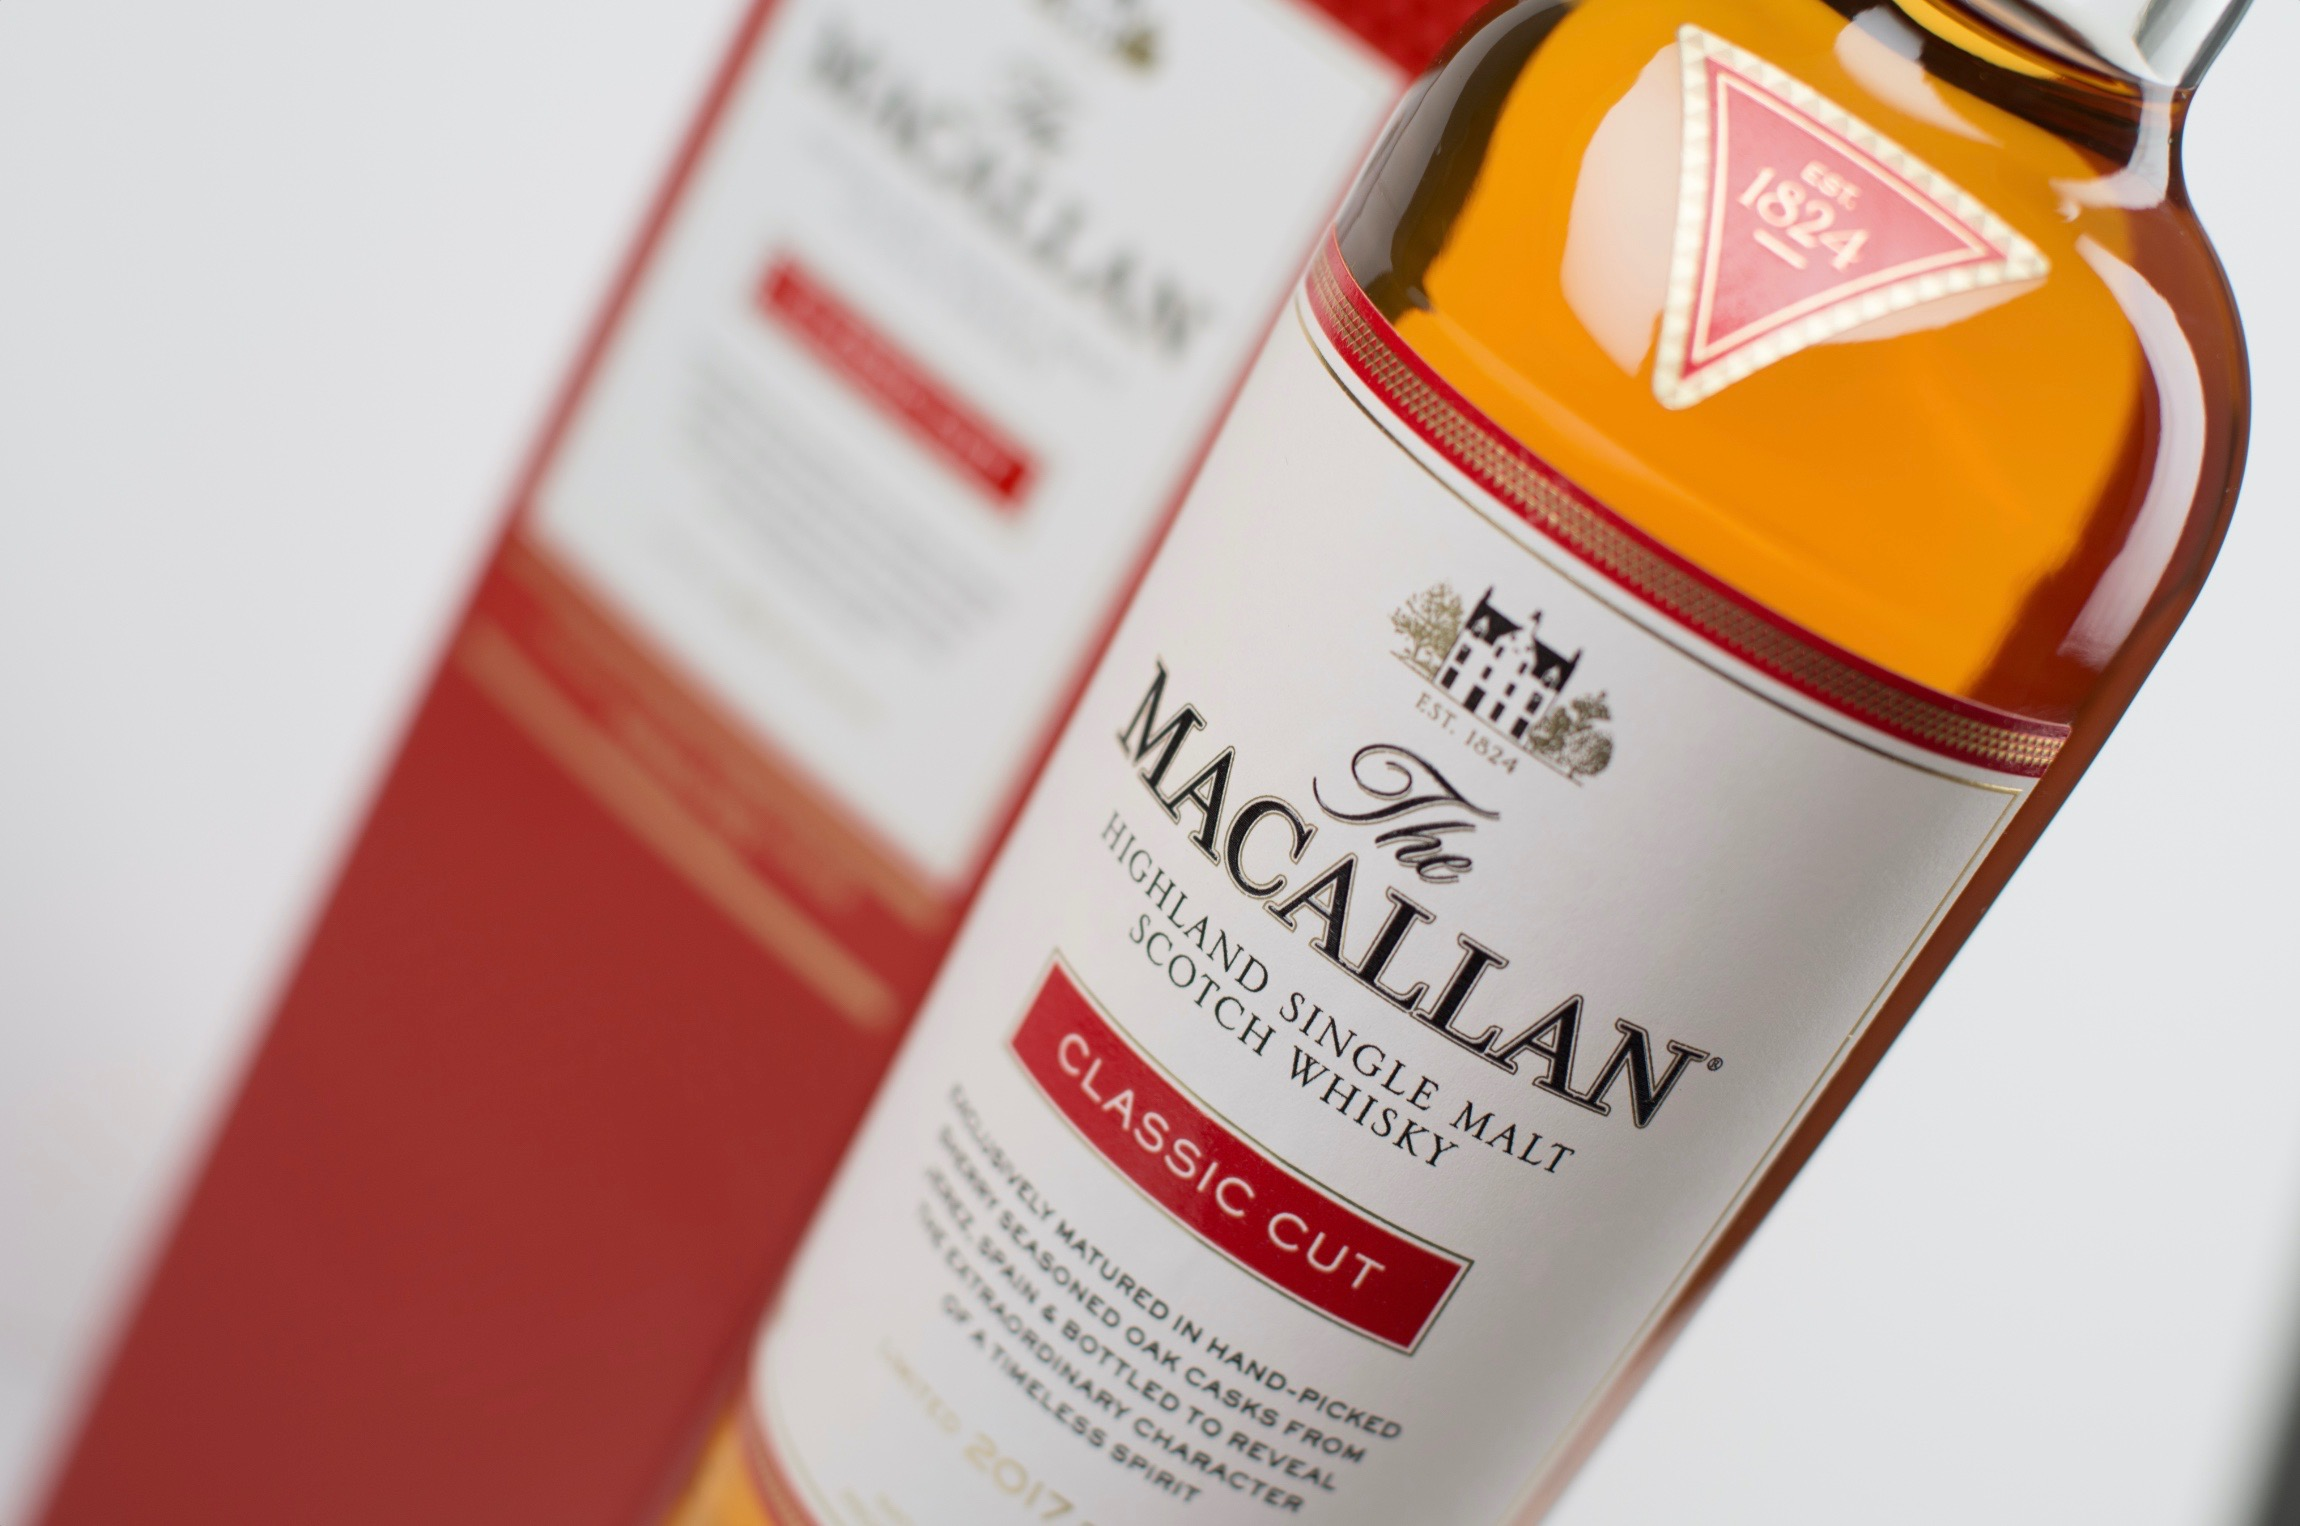 Whisky Collectors, Listen Up. The Macallan Classic Cut Is Now Out On The Block